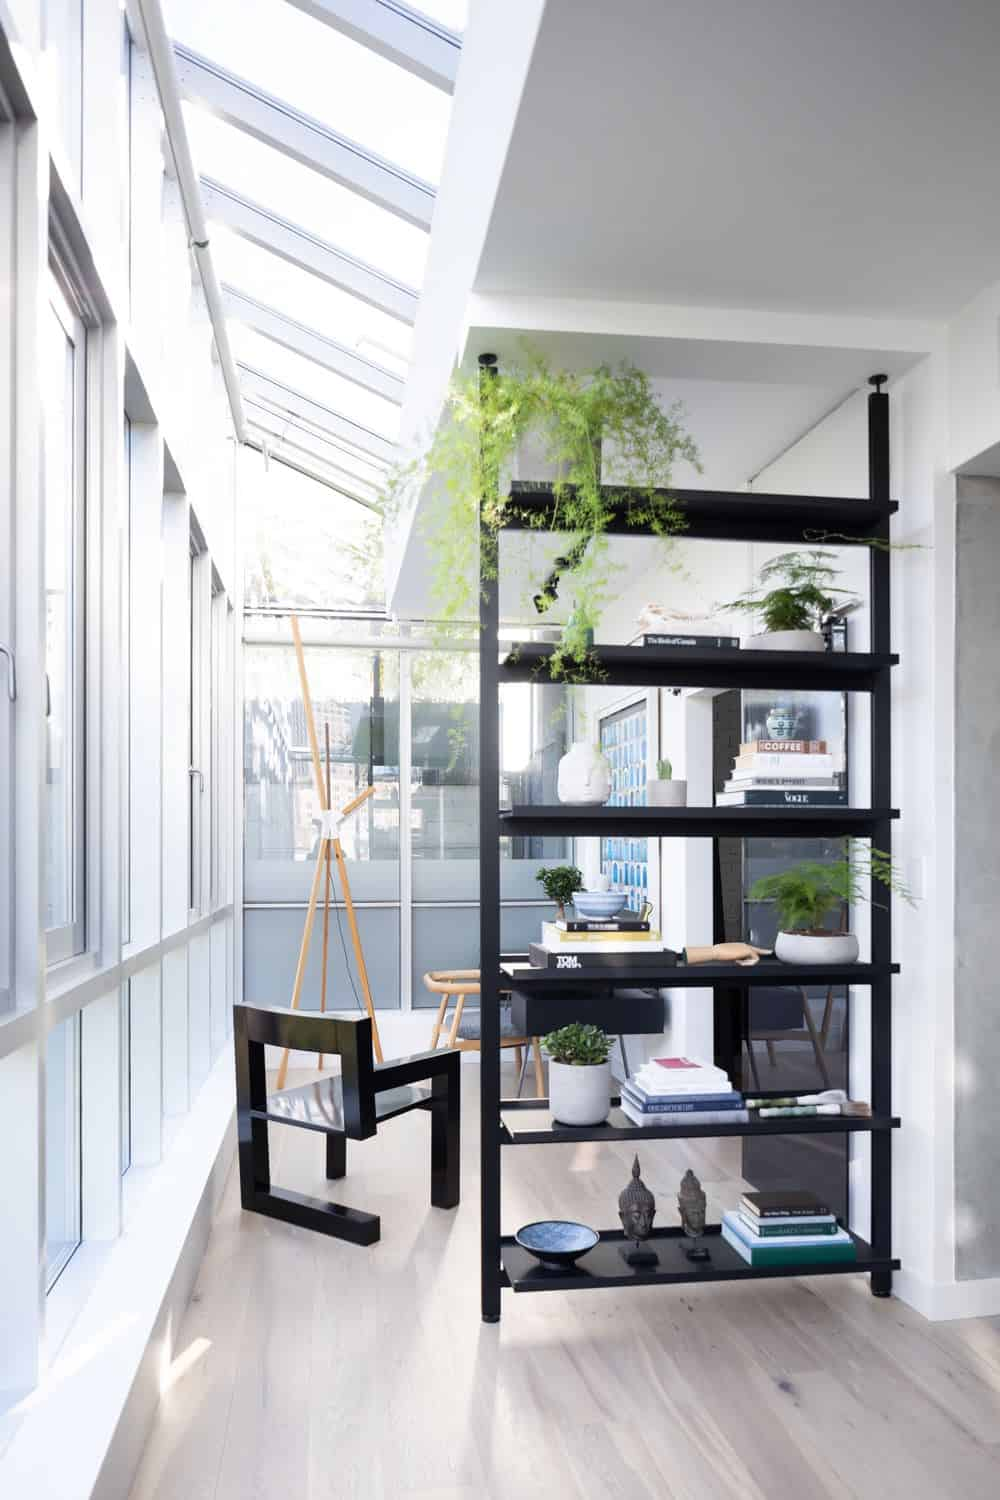 This is a small corner office that makes up for its small floor space with glass walls and skylights. This brightens the white half-ceiling and white wall to be contrasted by the black desk, chairs and shelves.